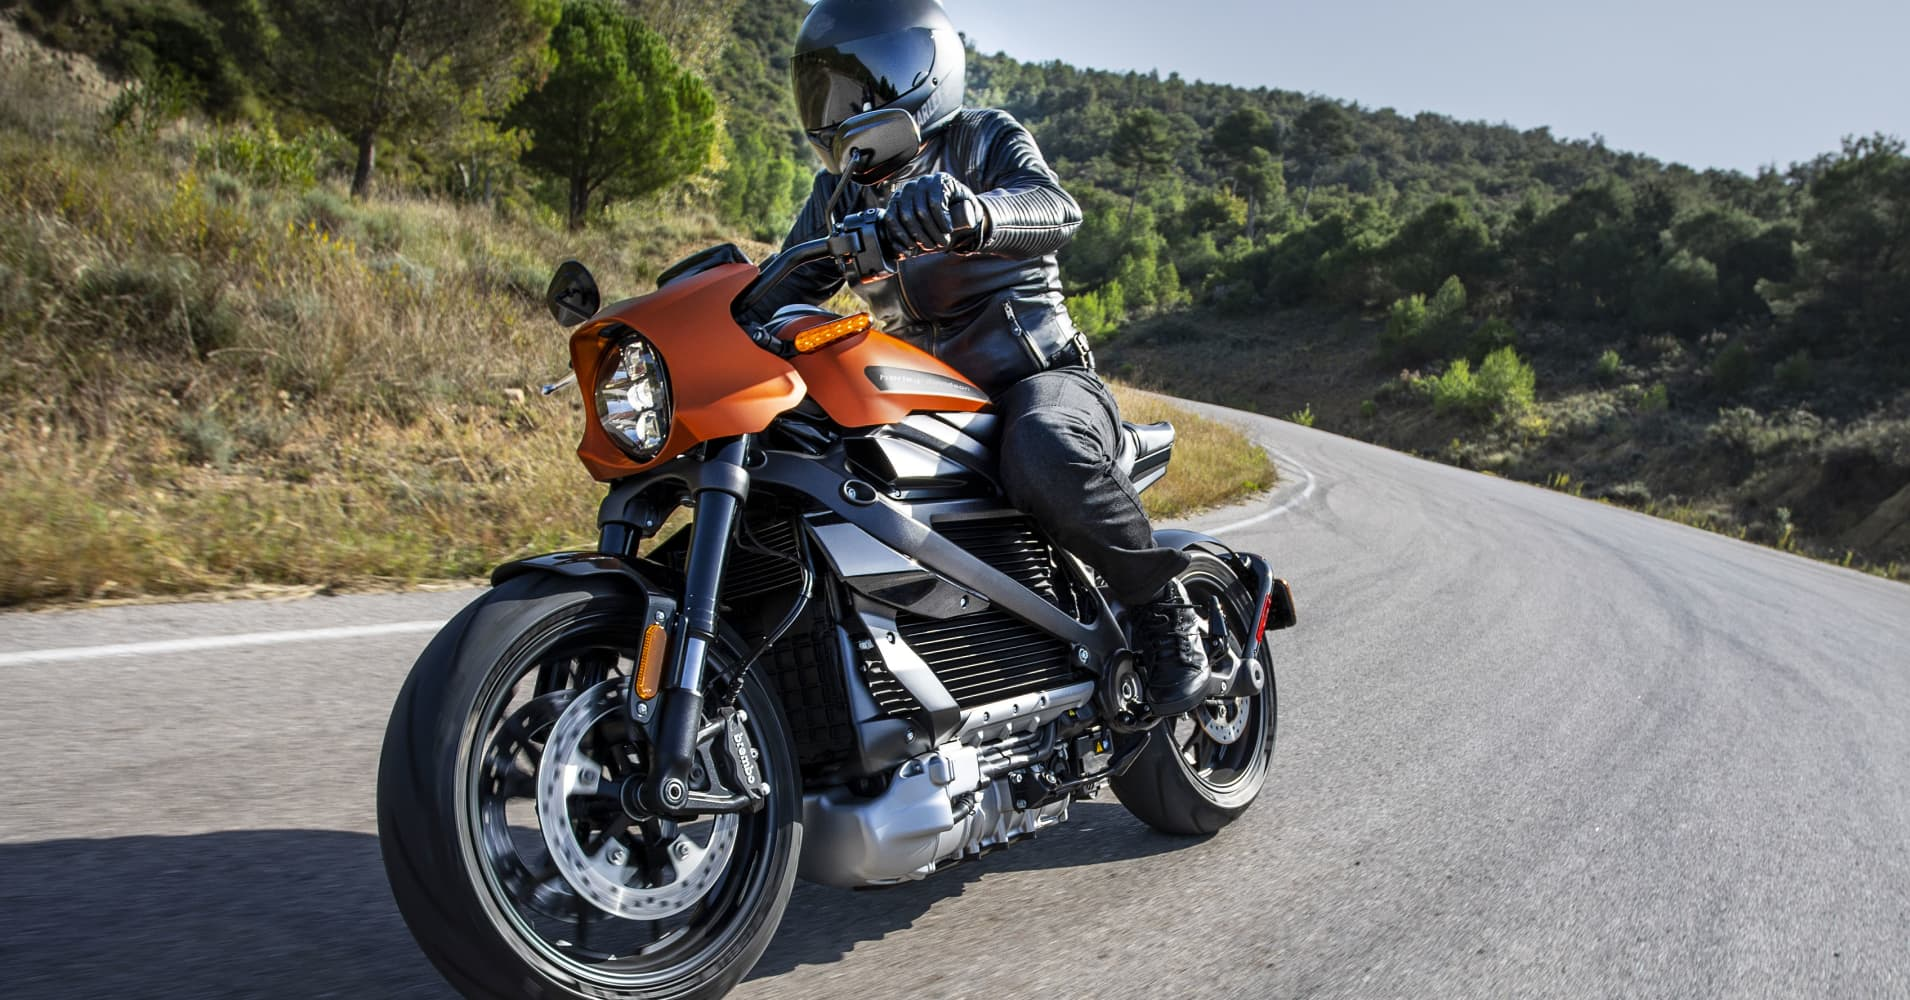 Harley-Davidson's Electric Motorcycle Is A Big Change For